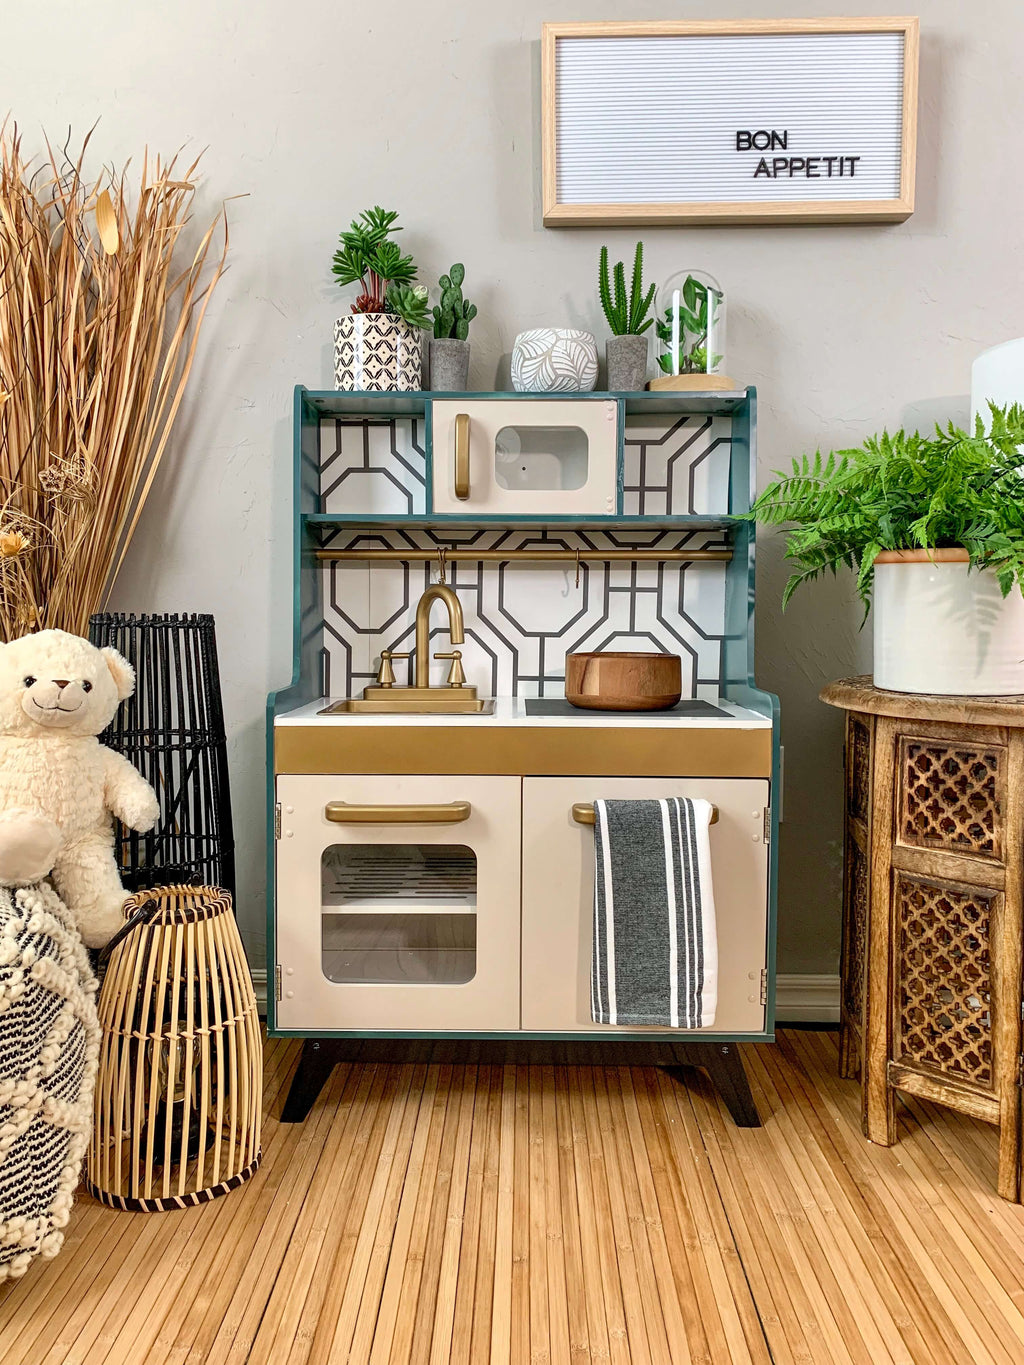 DIY Kid's Play Kitchen Hack